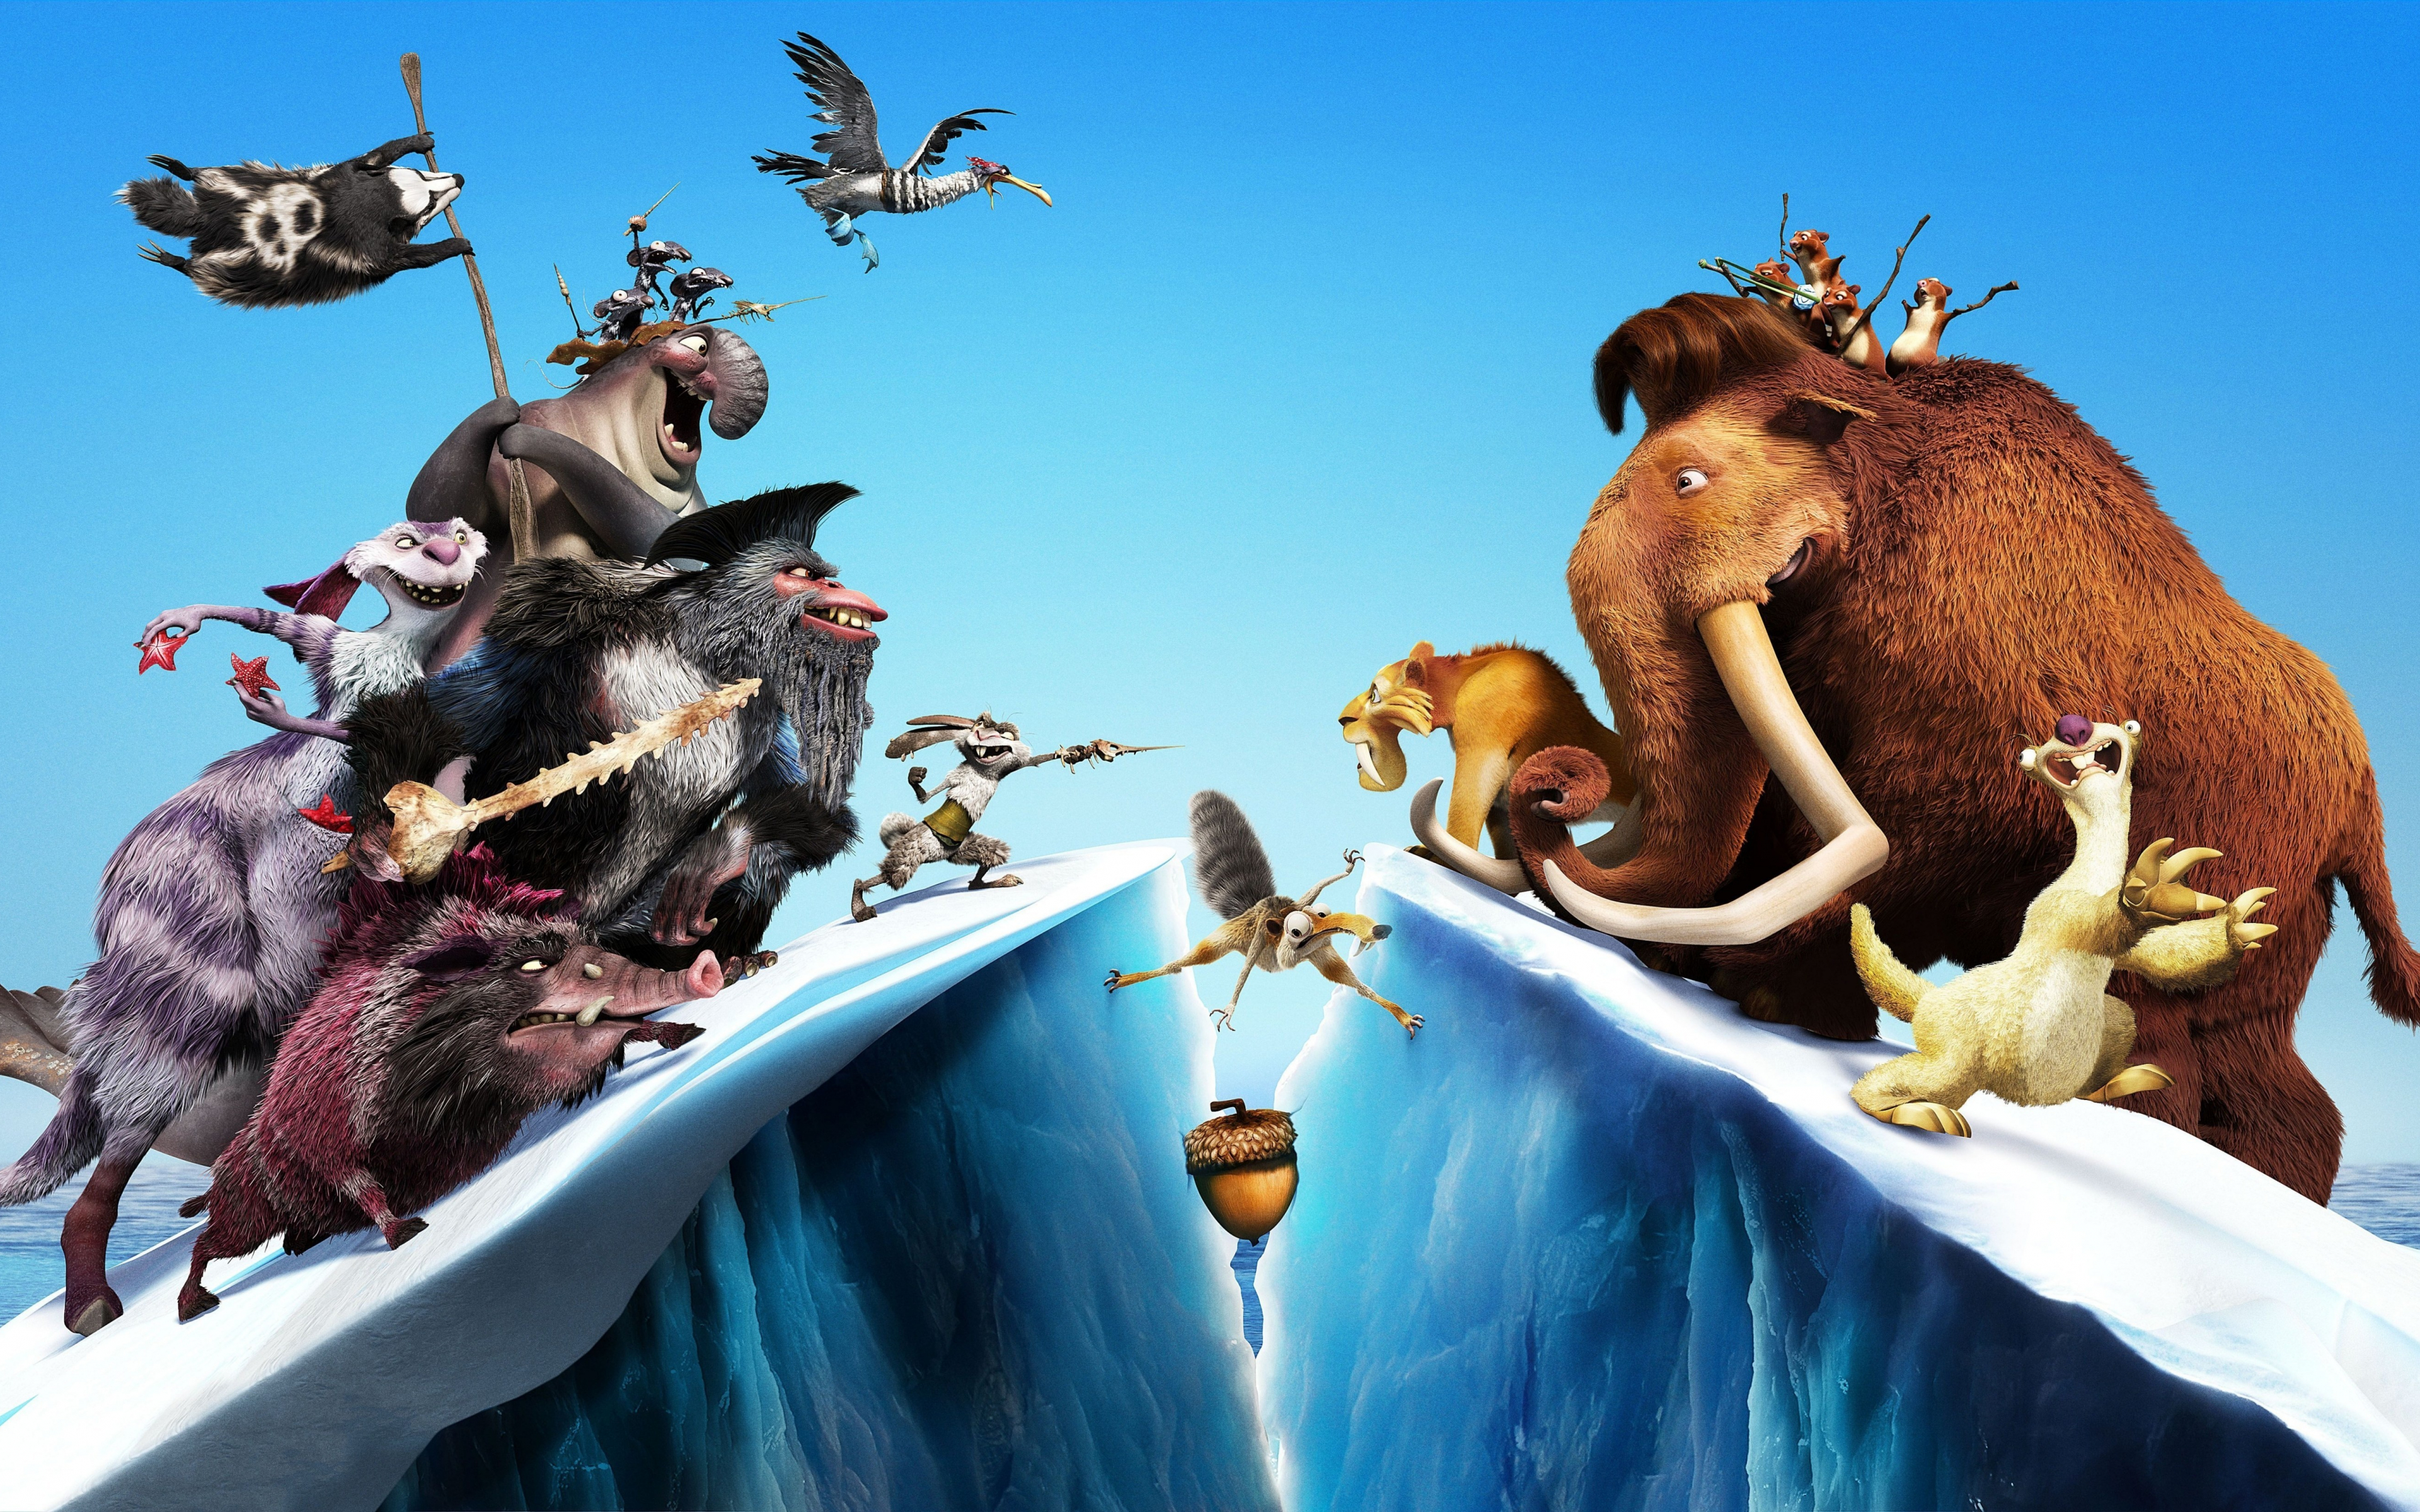 download 3840x2400 wallpaper ice age: continental drift, movie